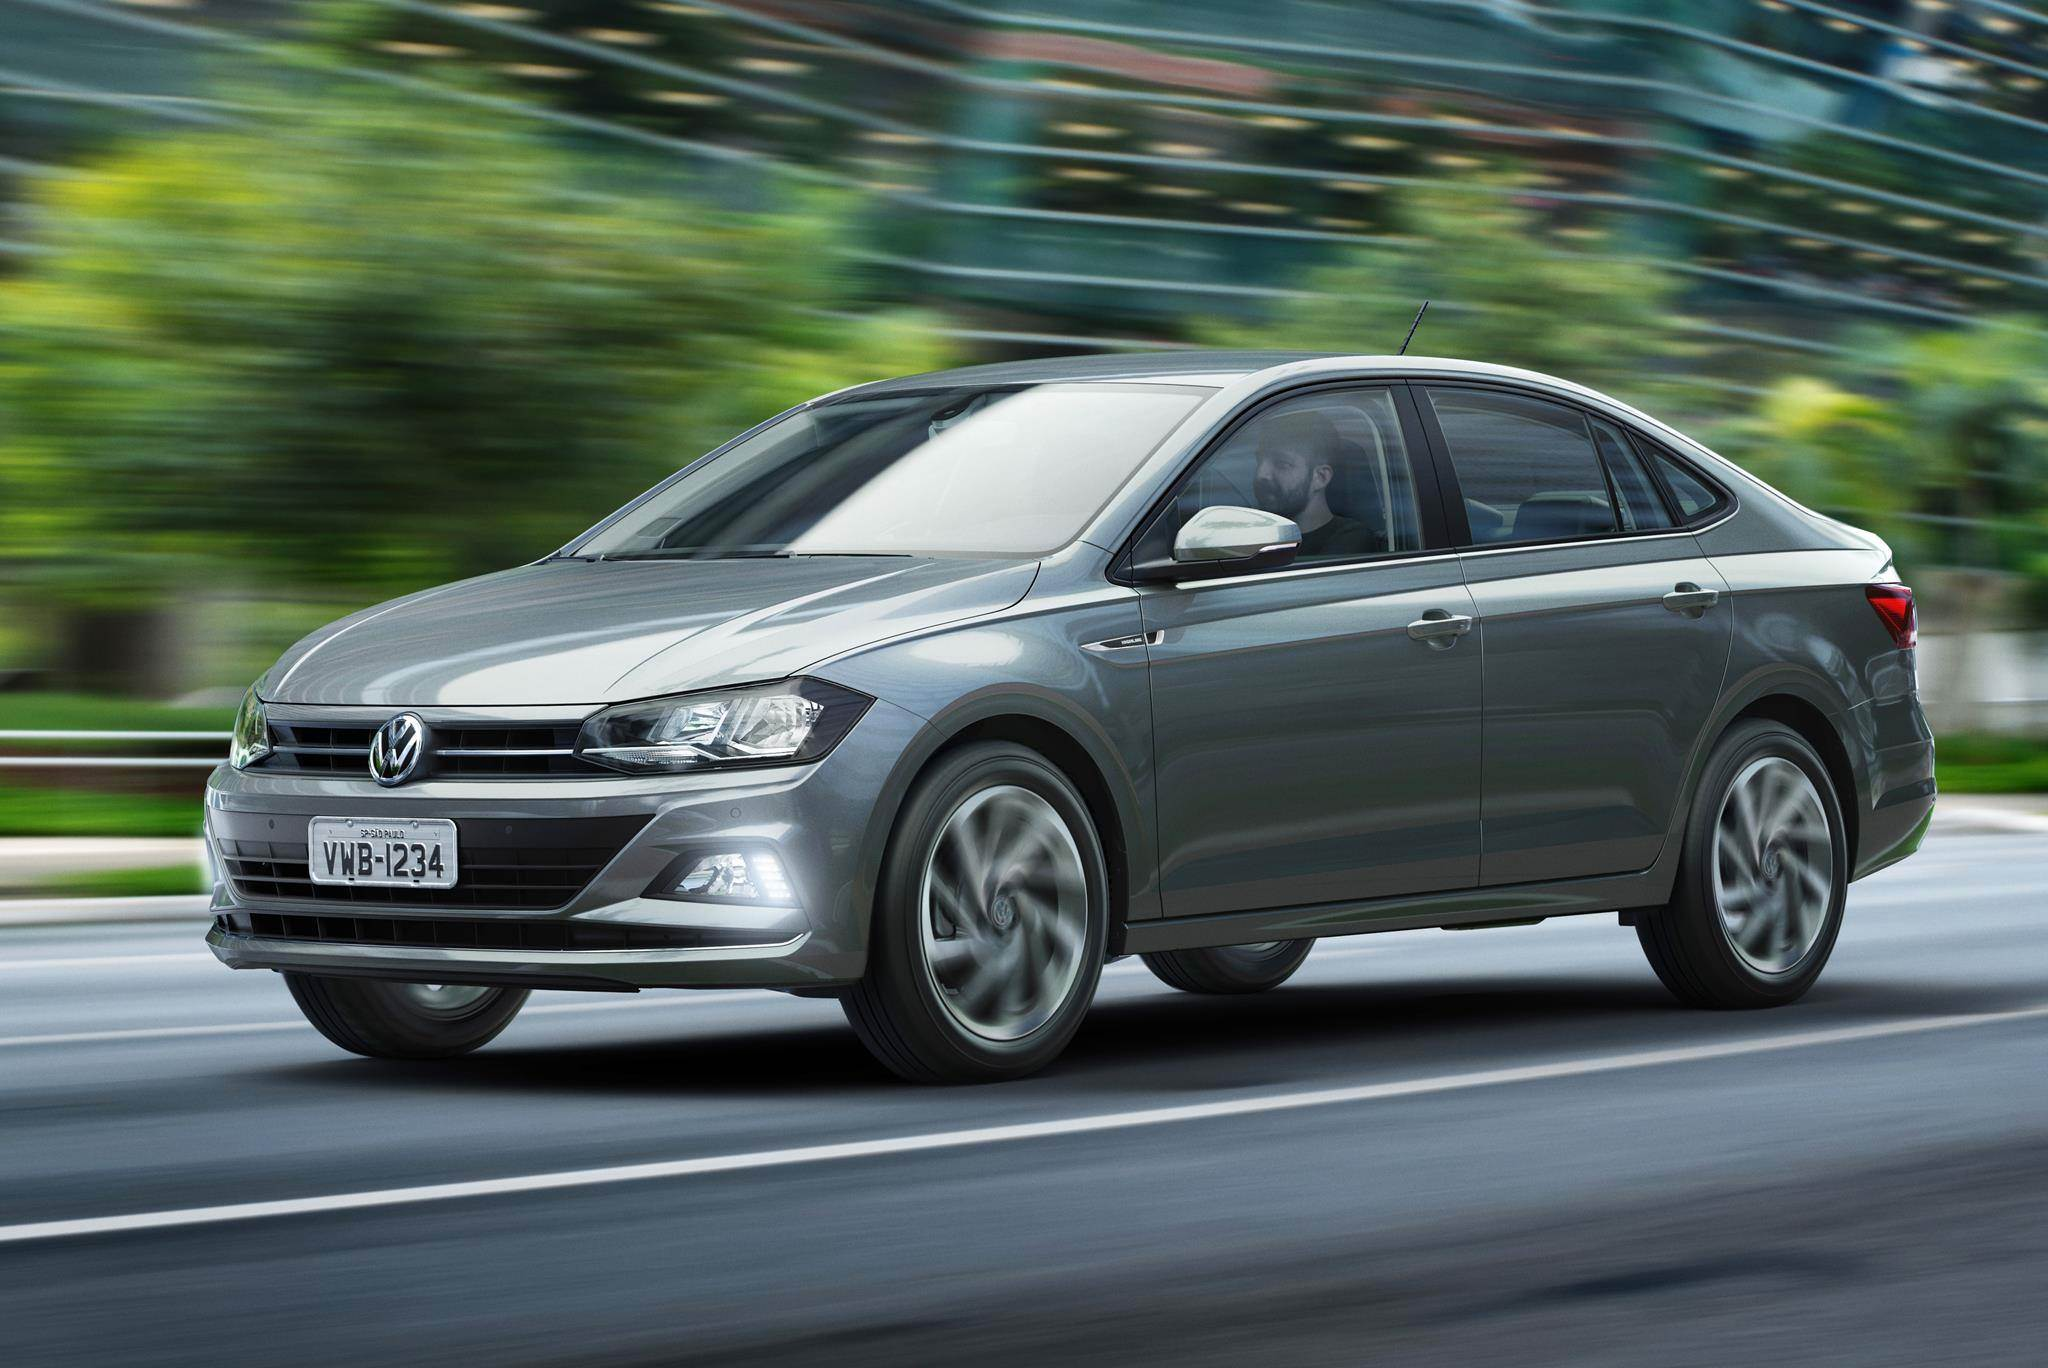 2018 Volkswagen Virtus revealed